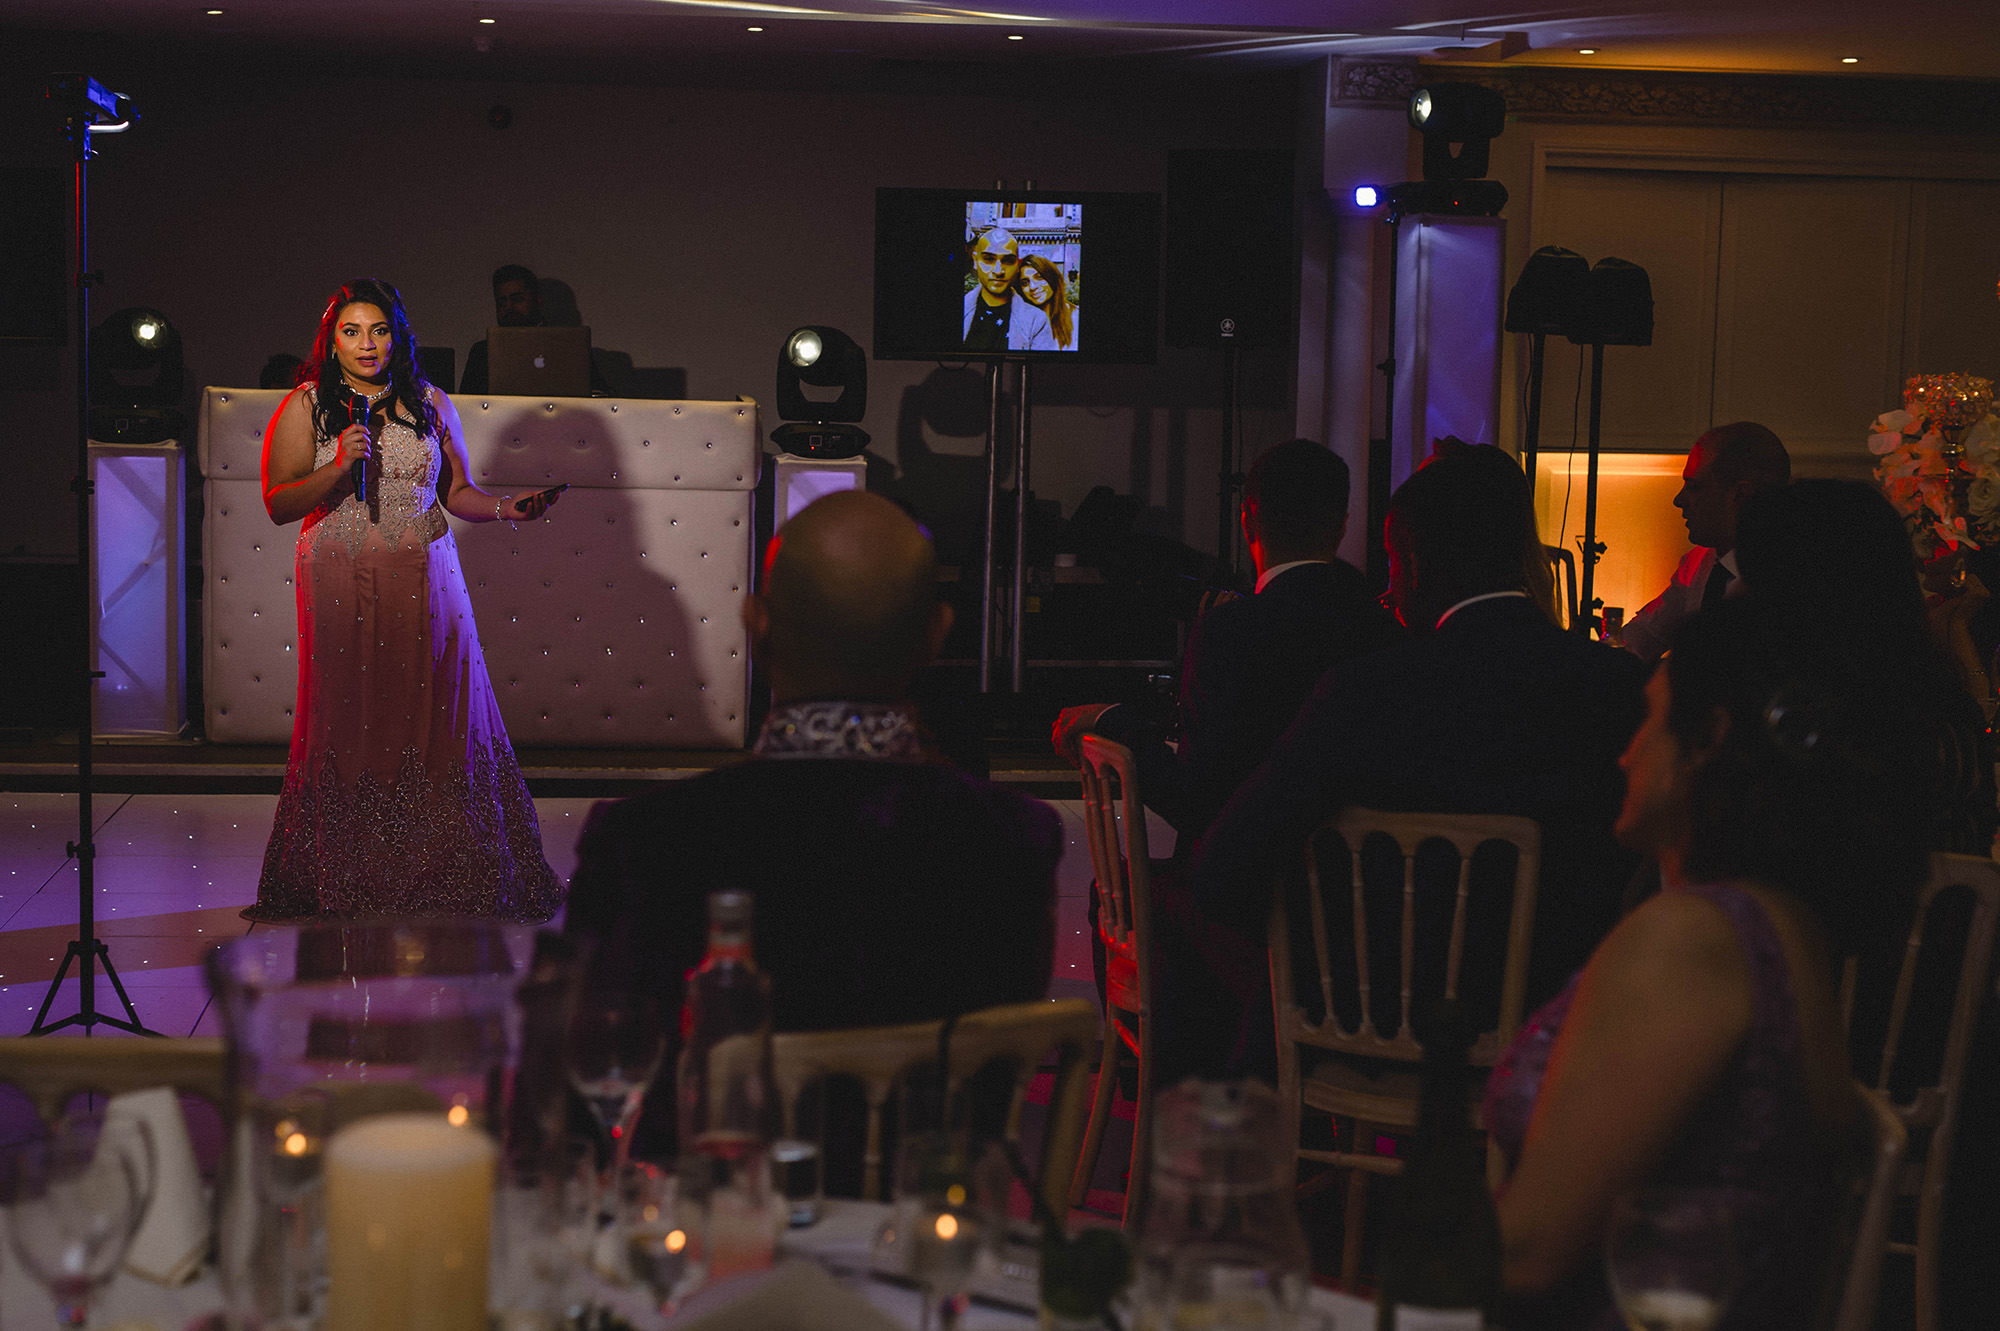 bride speech at her wedding reception